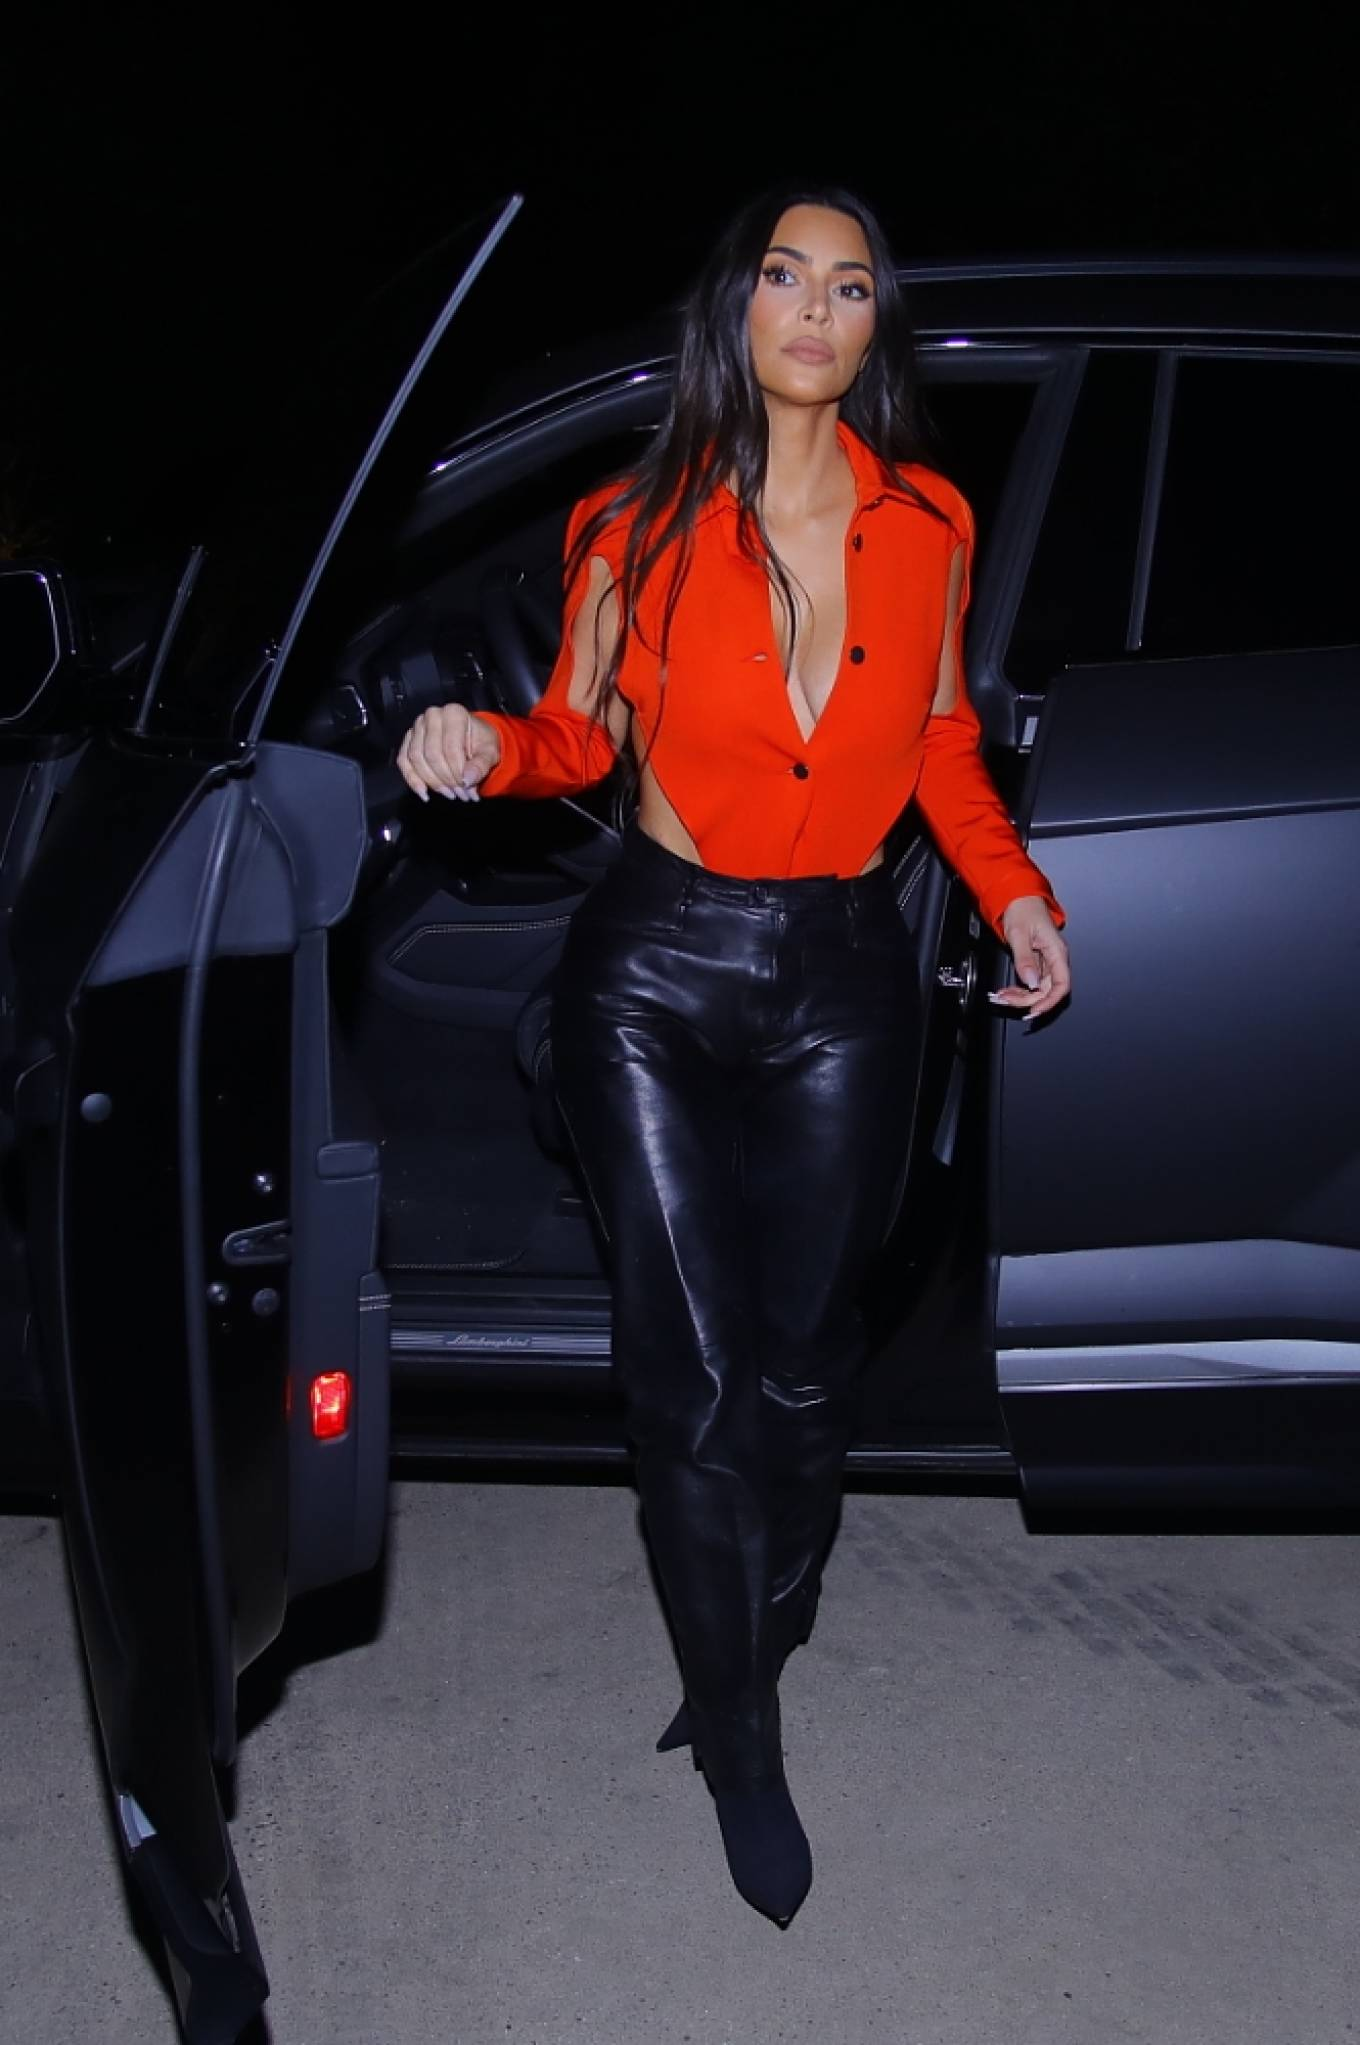 Kim Kardashian donning a very low neck red bodysuit with long sleeves and large cut out details on the hands and waist